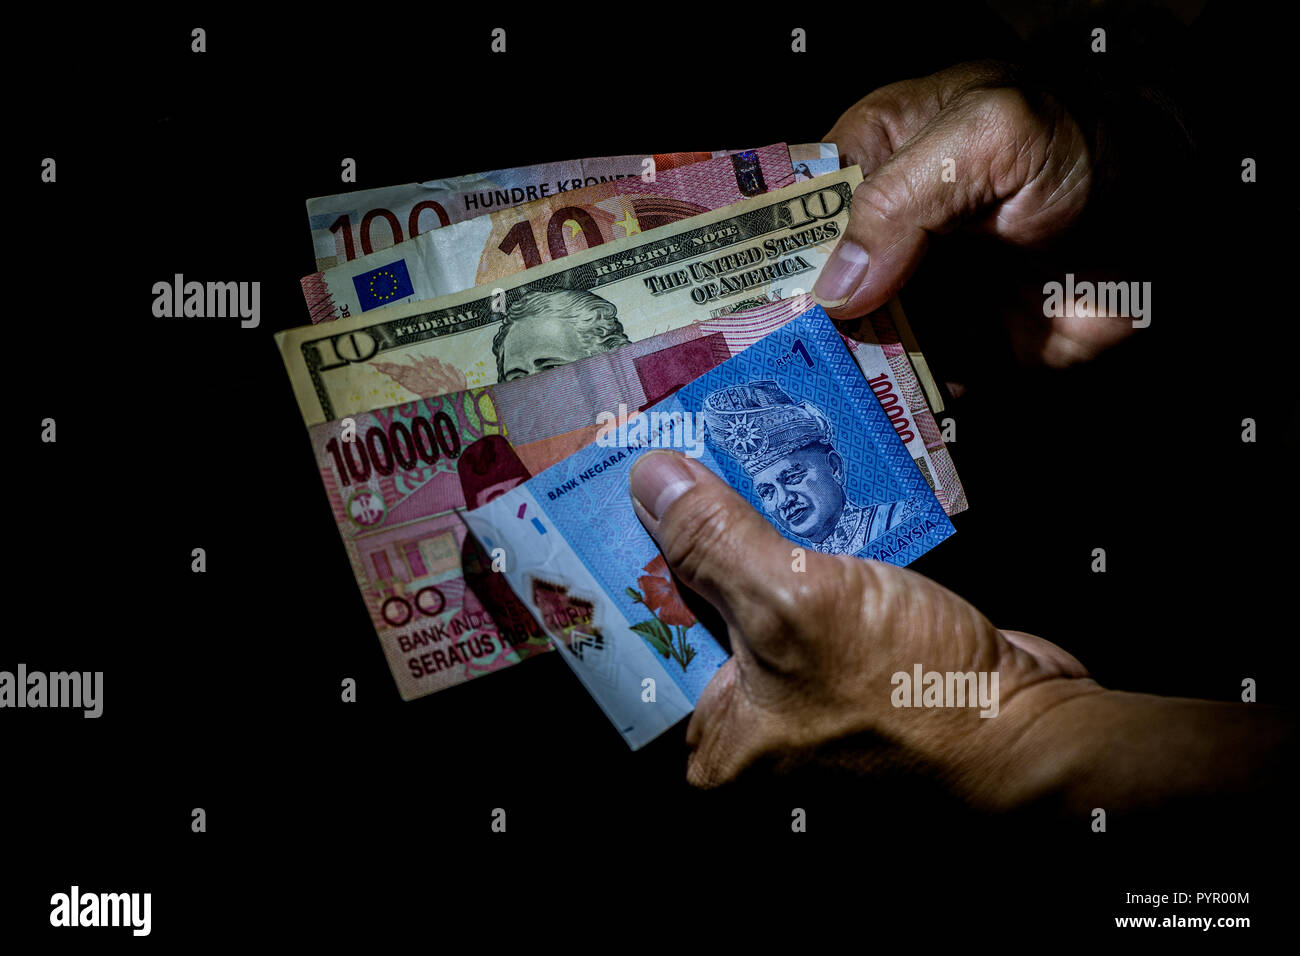 Multi national currencies in a hand of a person. Concept of international traveler finances. - Stock Image